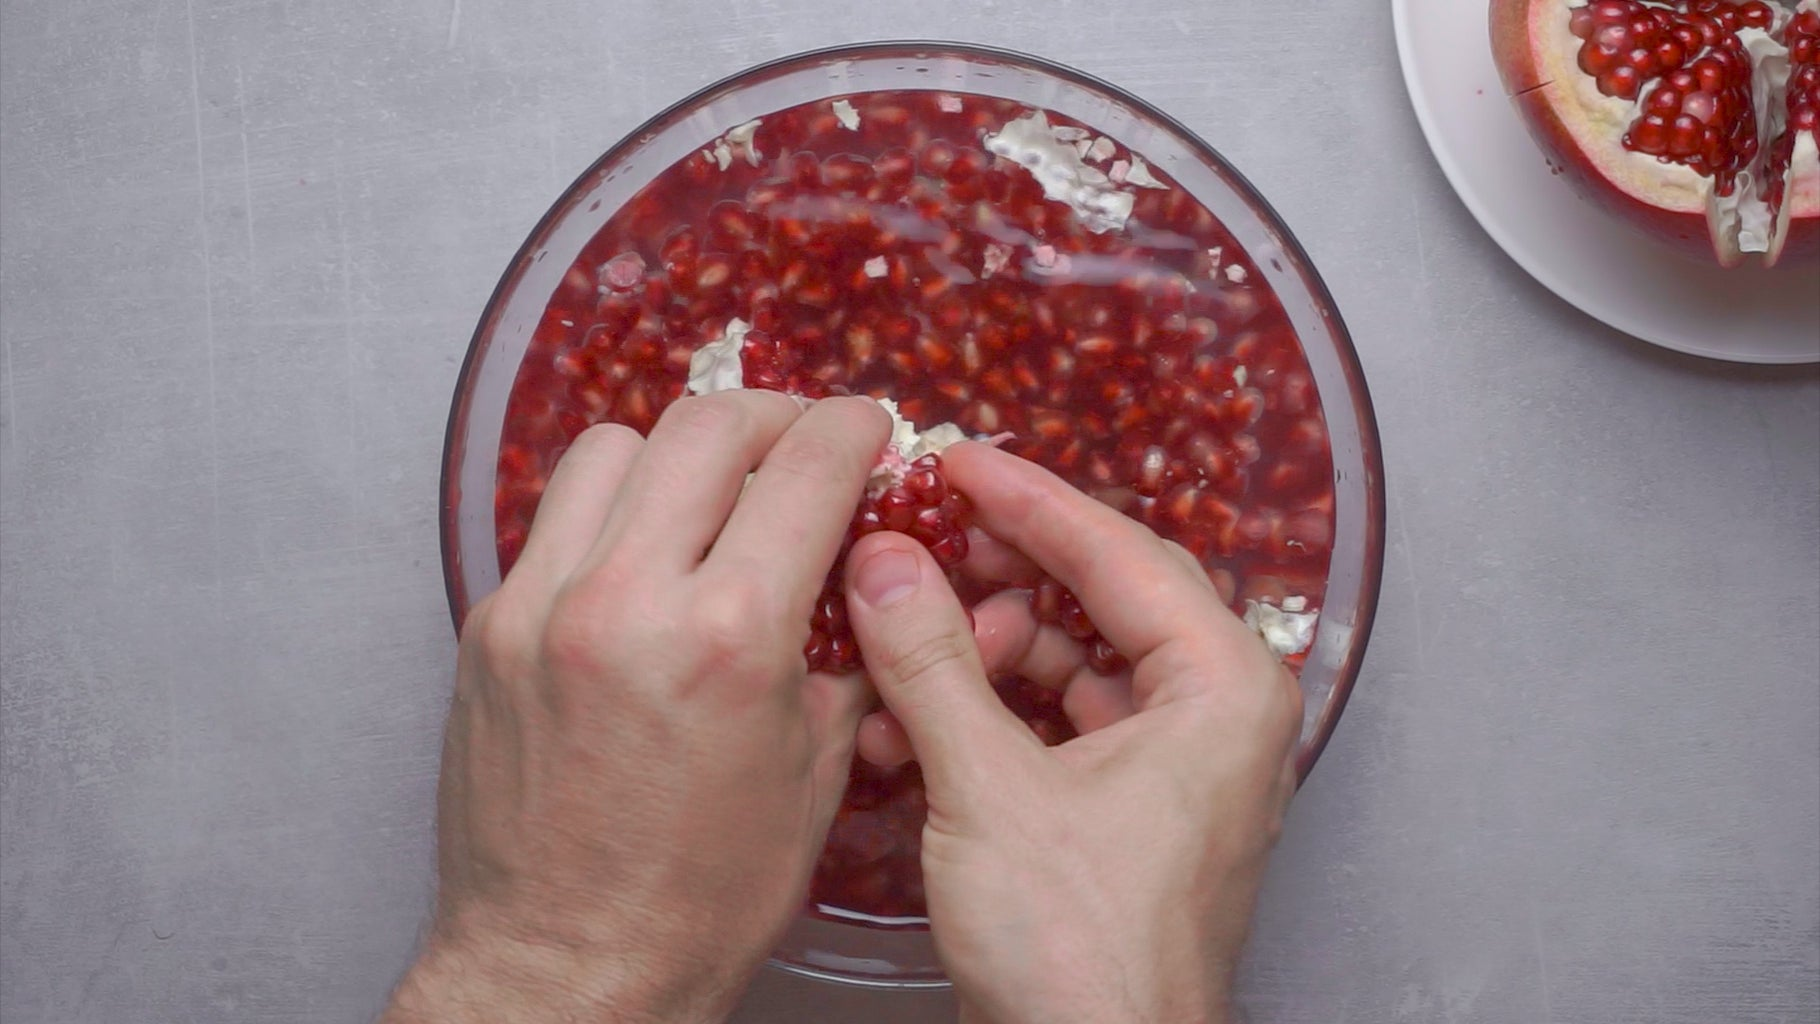 Place the Pomegranate Into a Bowl of Water and Peel It There